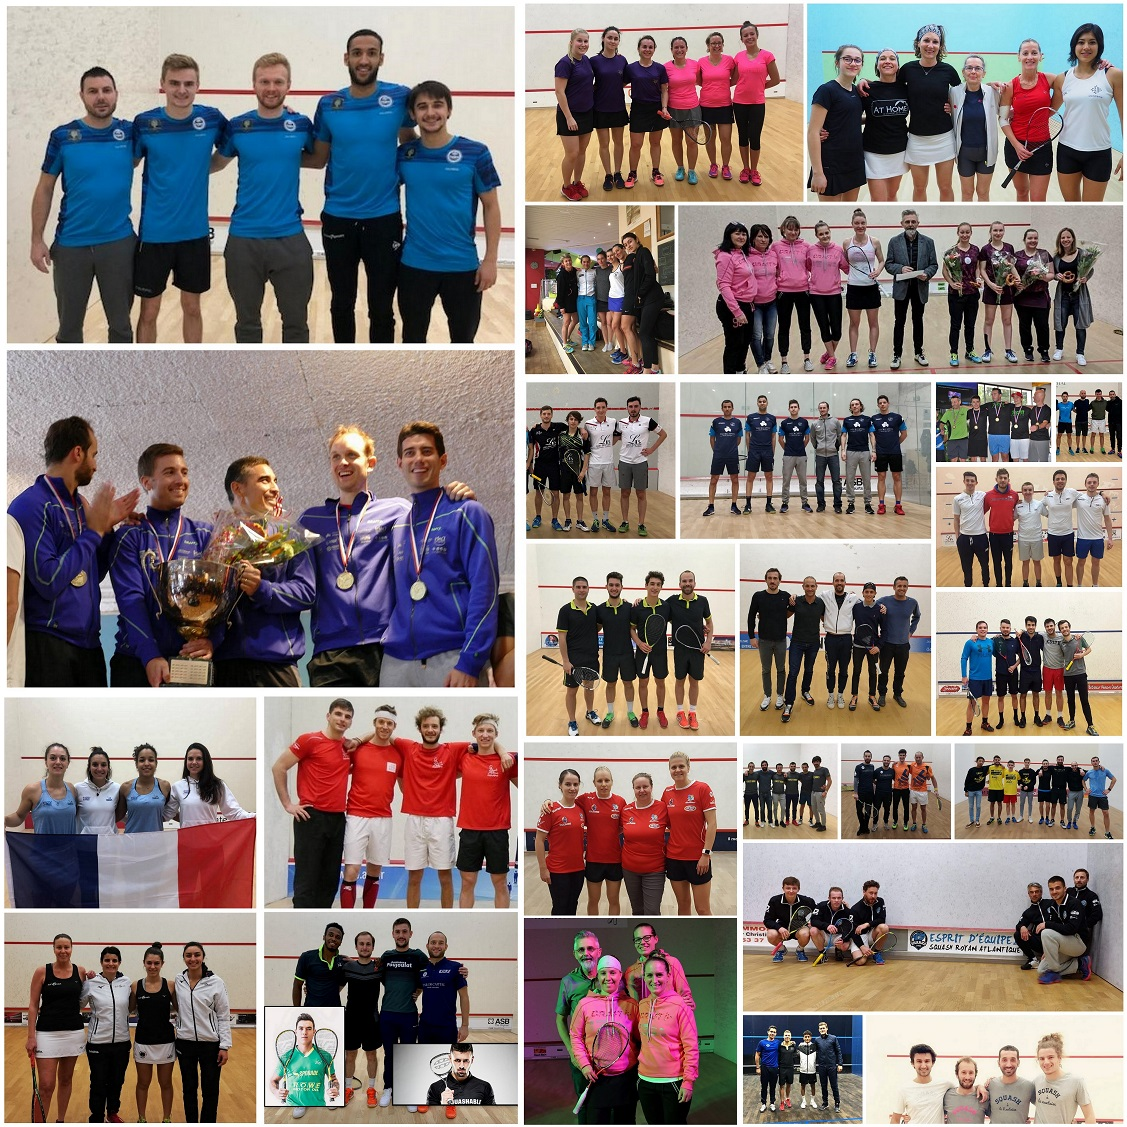 PLAY-OFFS DES INTERCLUBS : BORDEAUX FÊTE LE SQUASH